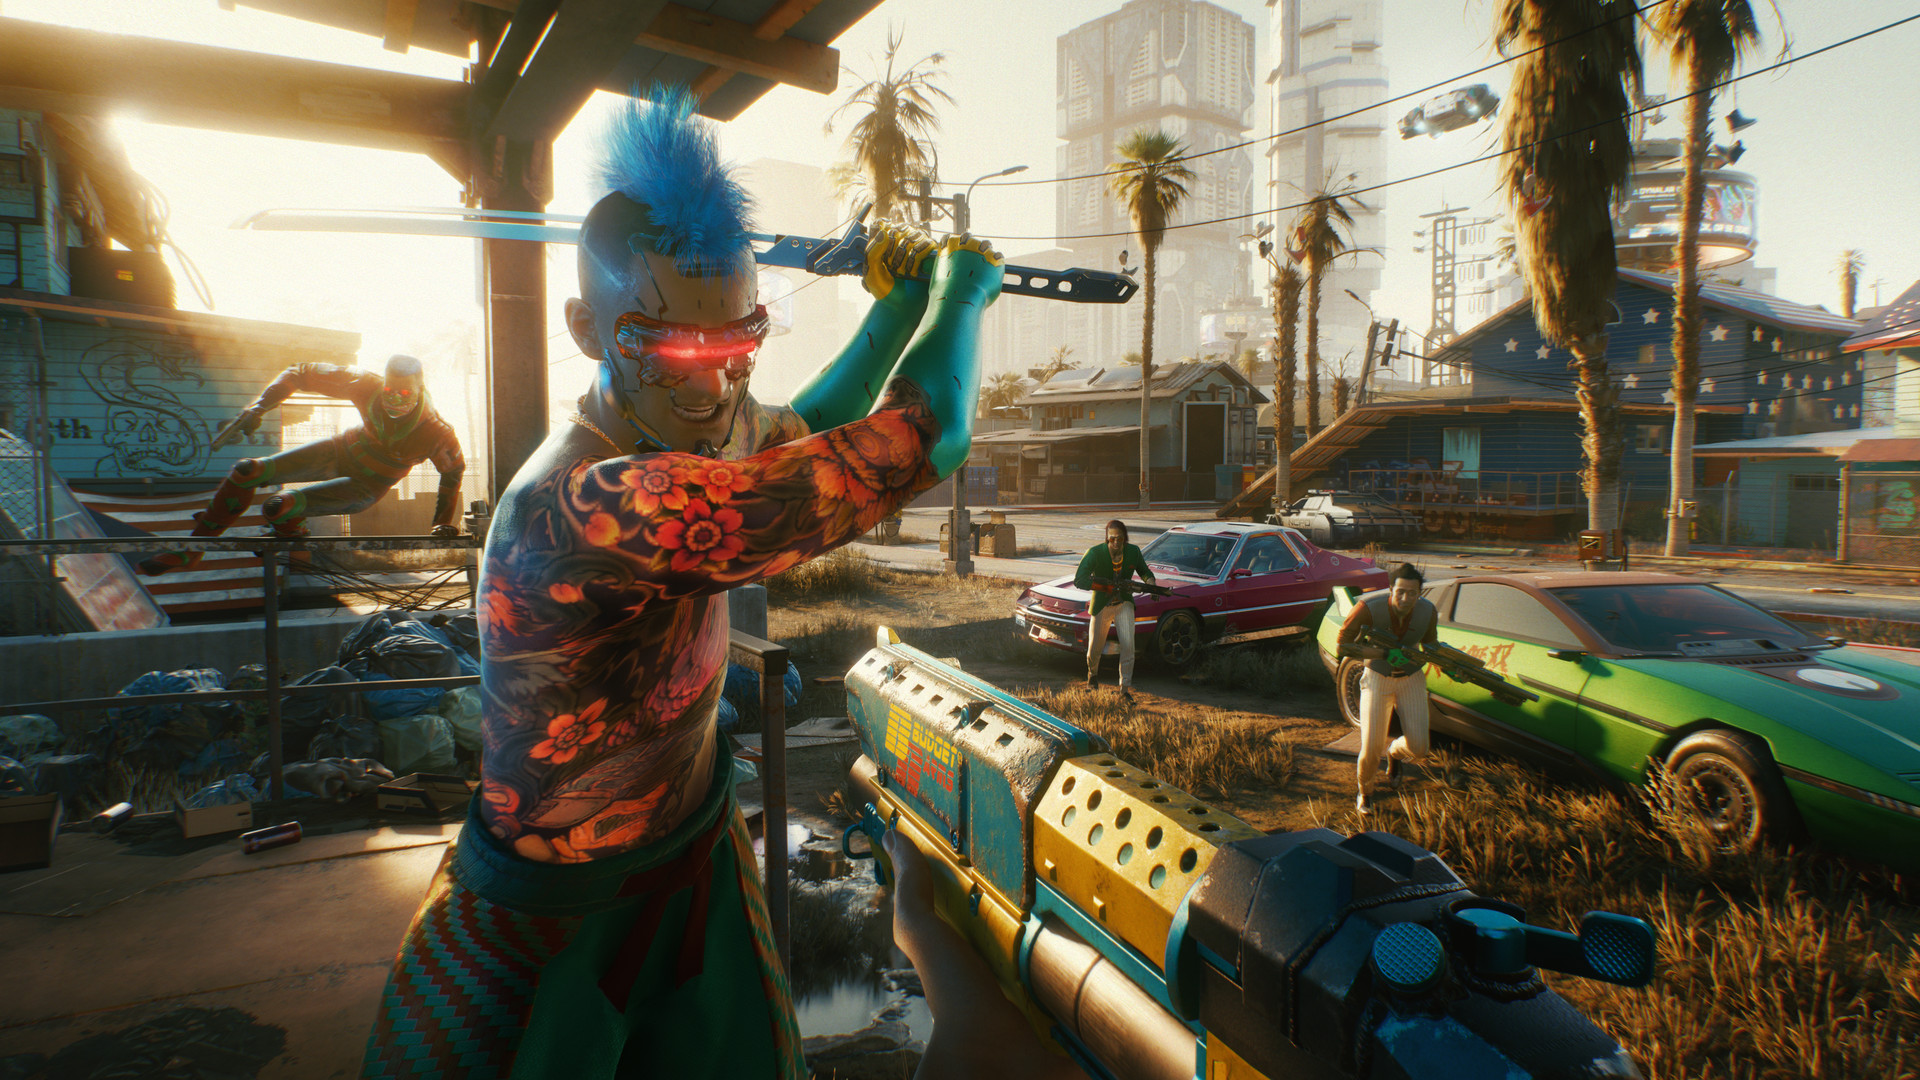 Cyberpunk 2077 skills guide: The best attributes and perks